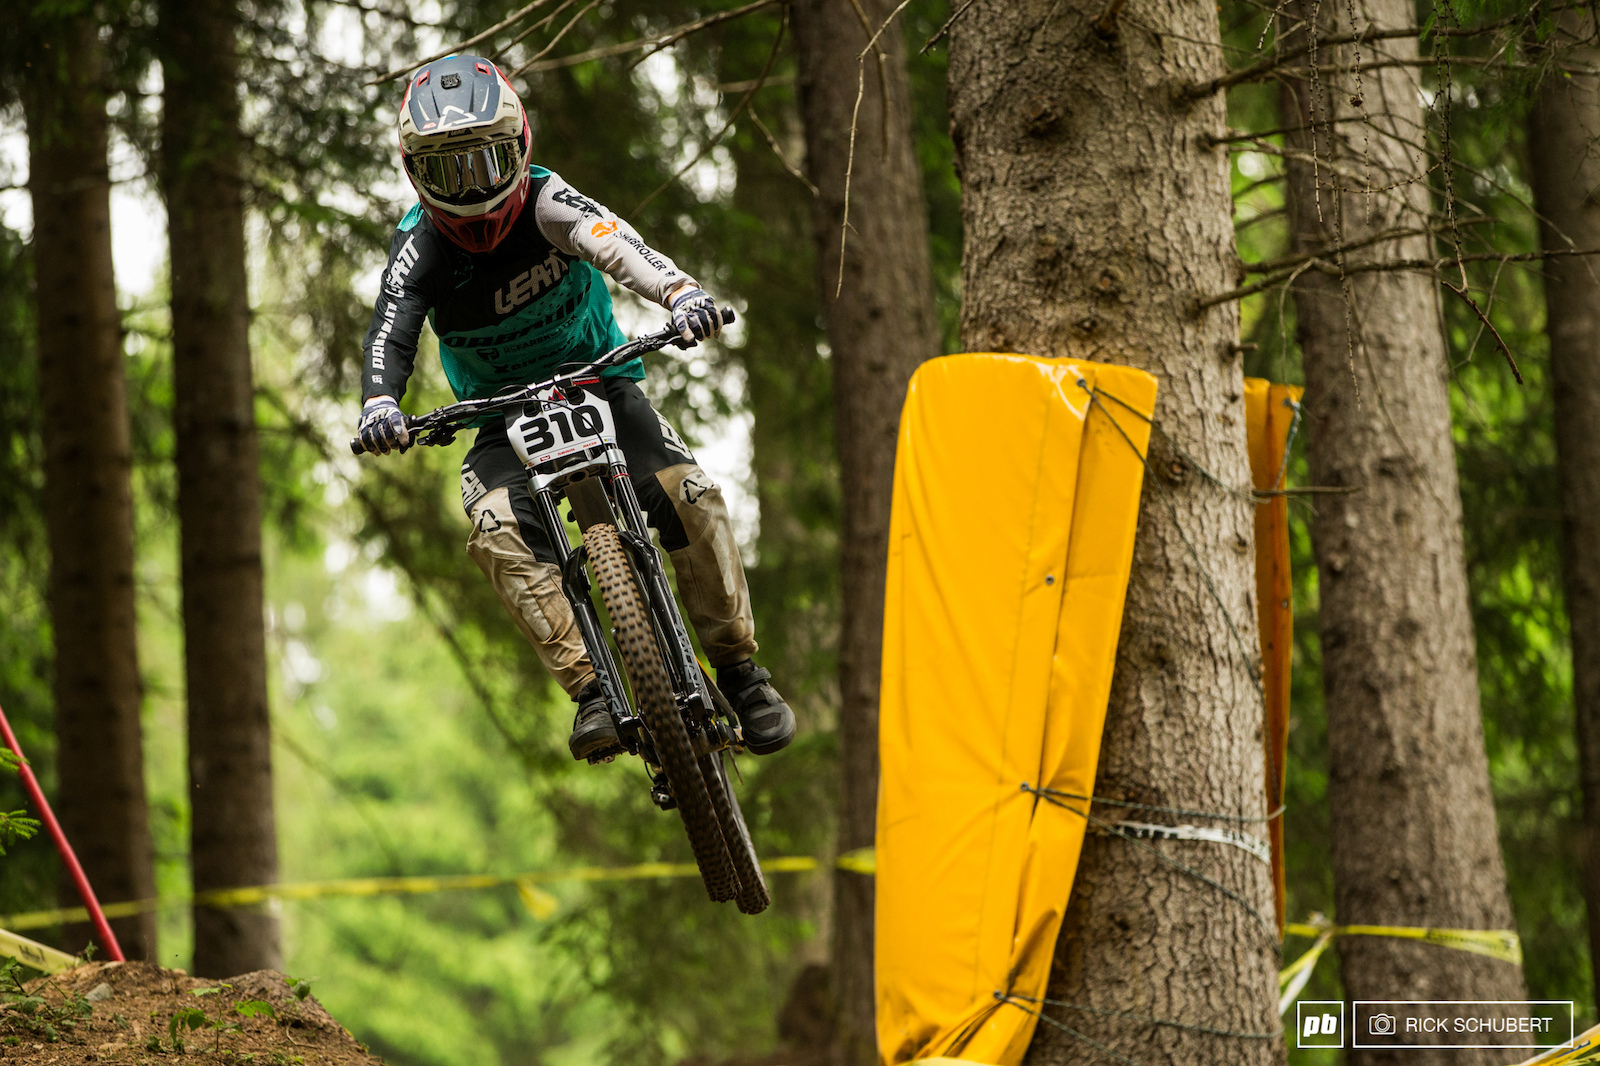 Remy Meier Smith is riding his first year of juniors and is looking pinned